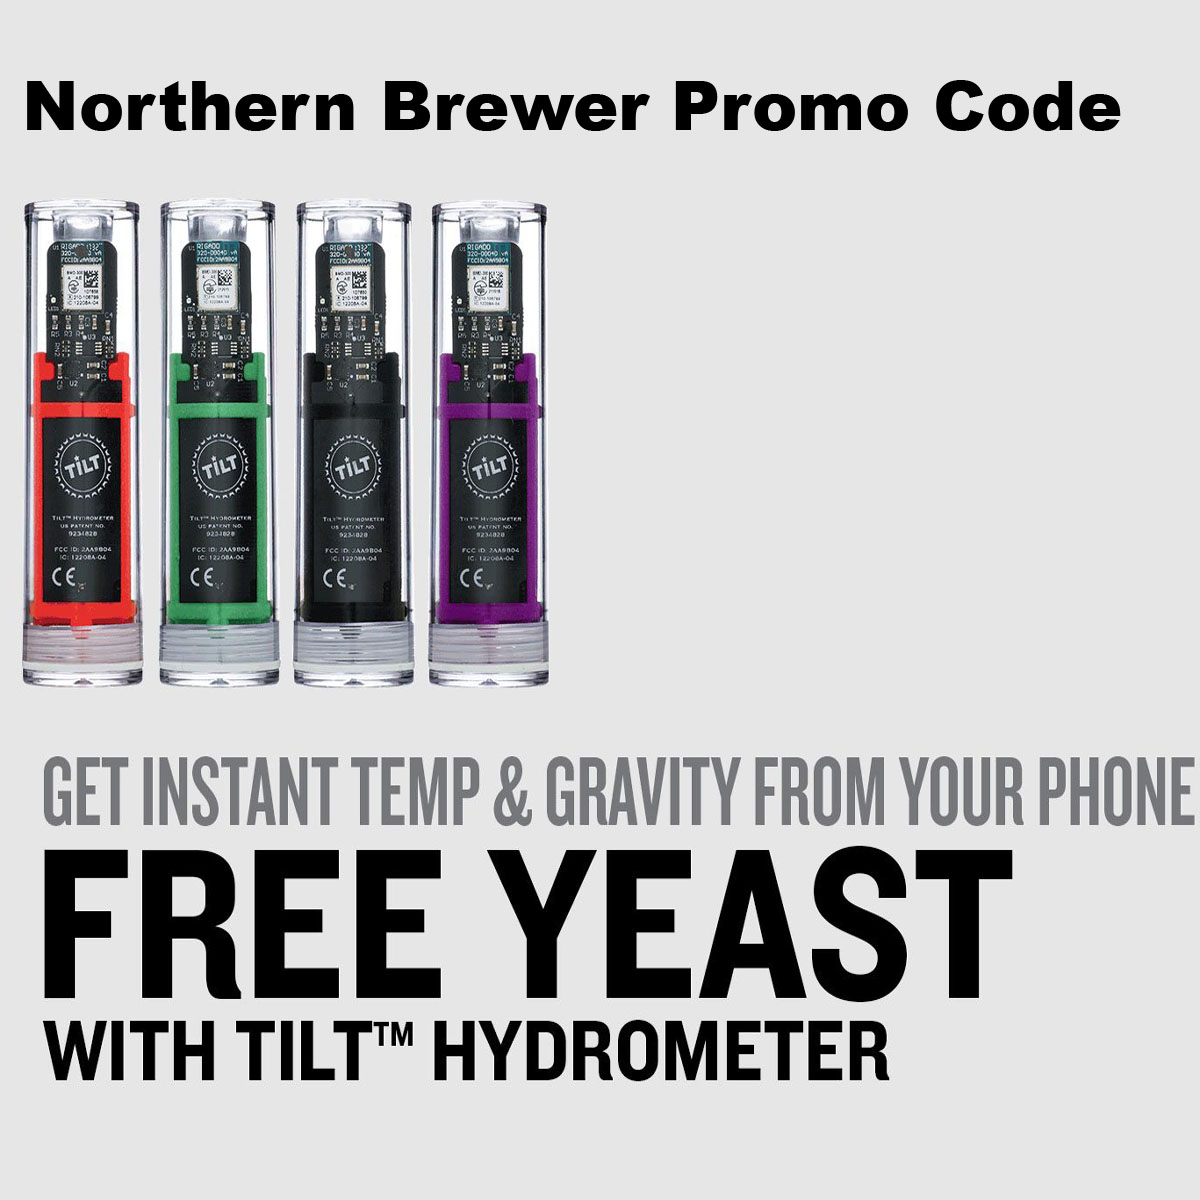 Northern Brewer Get a FREE Yeast Pack with the purchase of a Tilt digital Hydrometer NorthernBrewer.com Promo Code Coupon Code